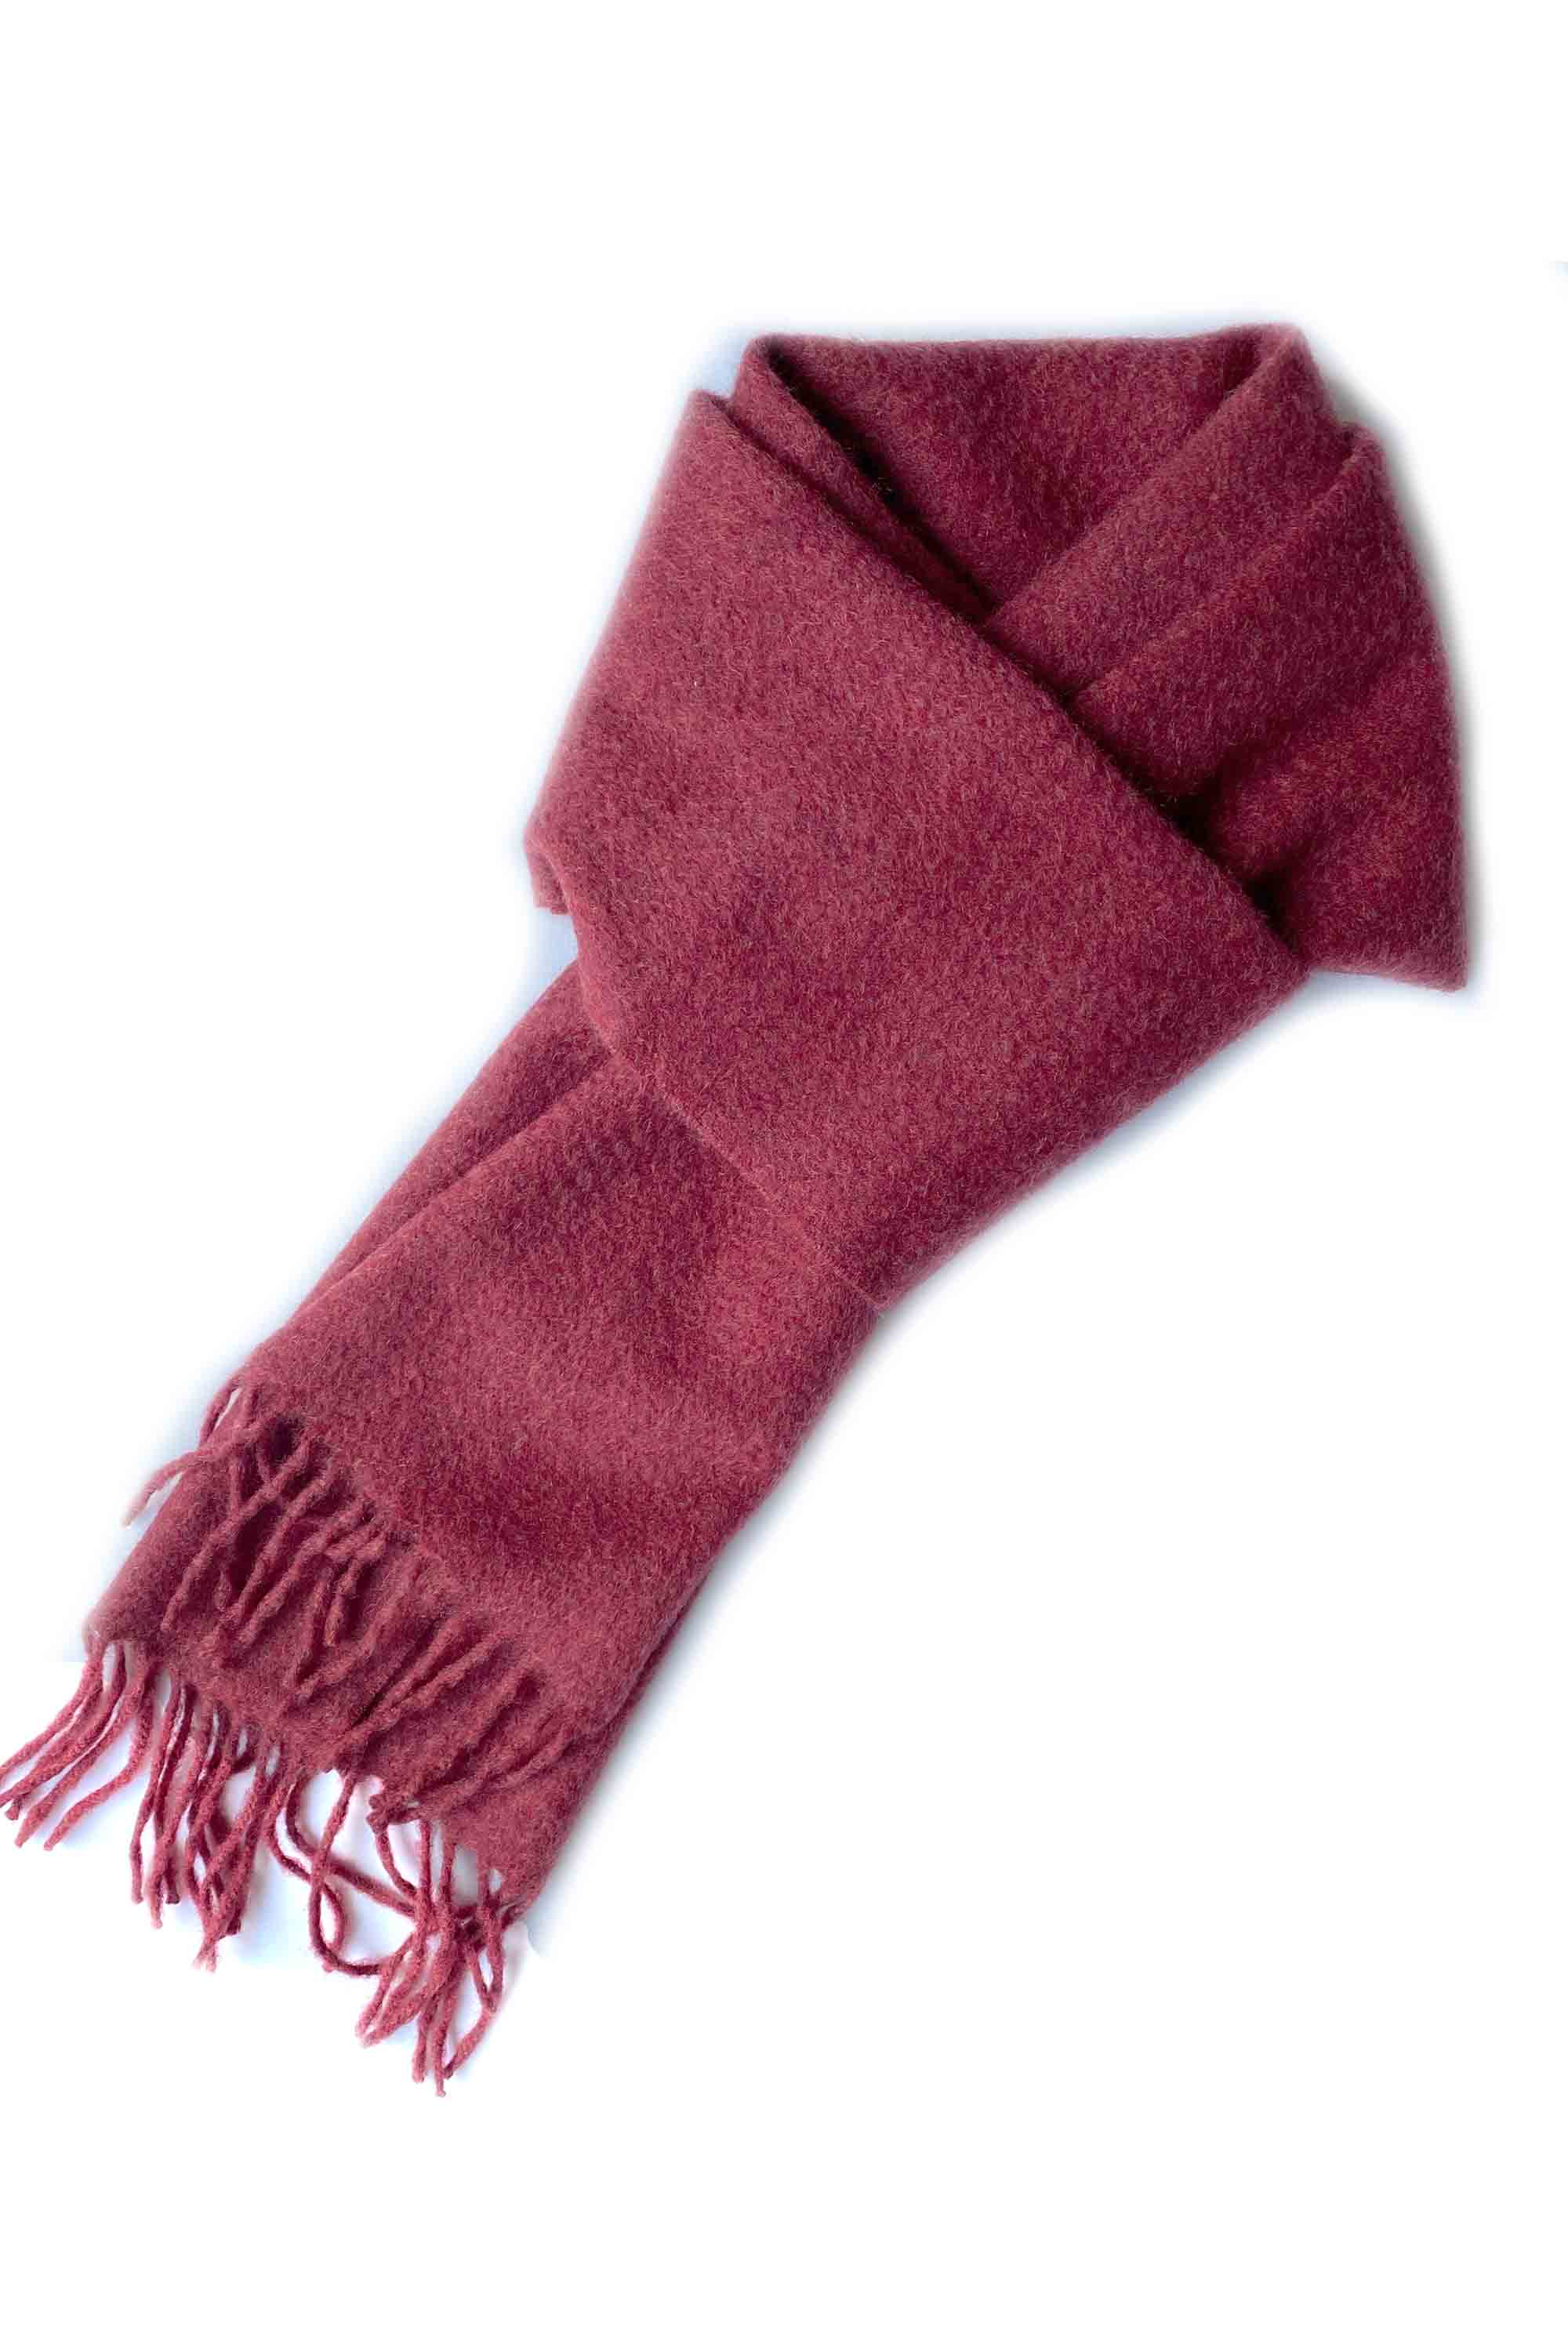 Unisex cashmere scarf with fringes in burgundy for men women